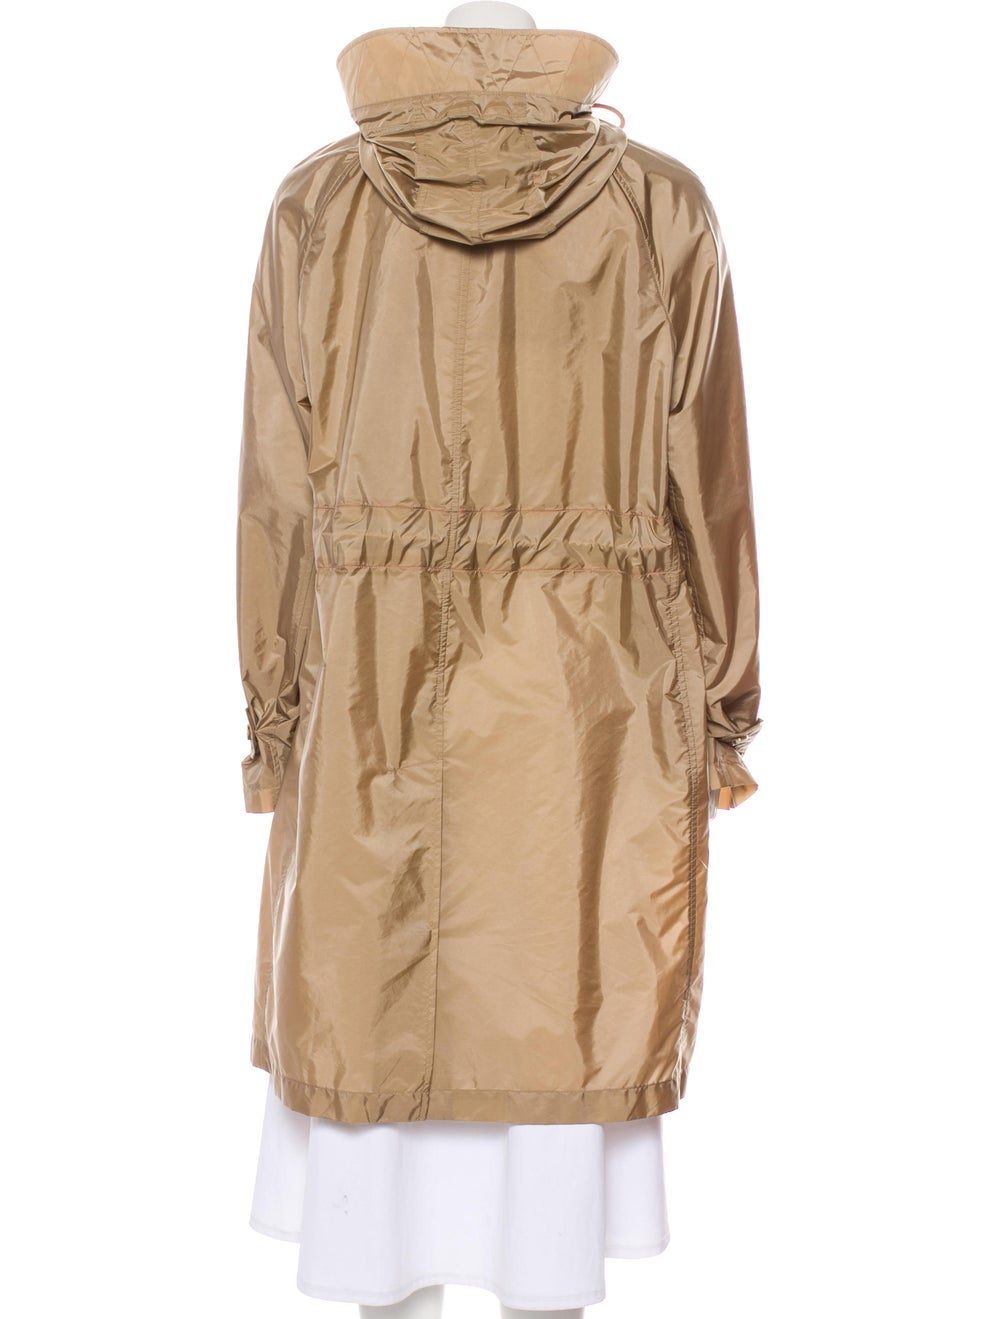 Burberry Knee-Length Trench Coat Beige - image 3